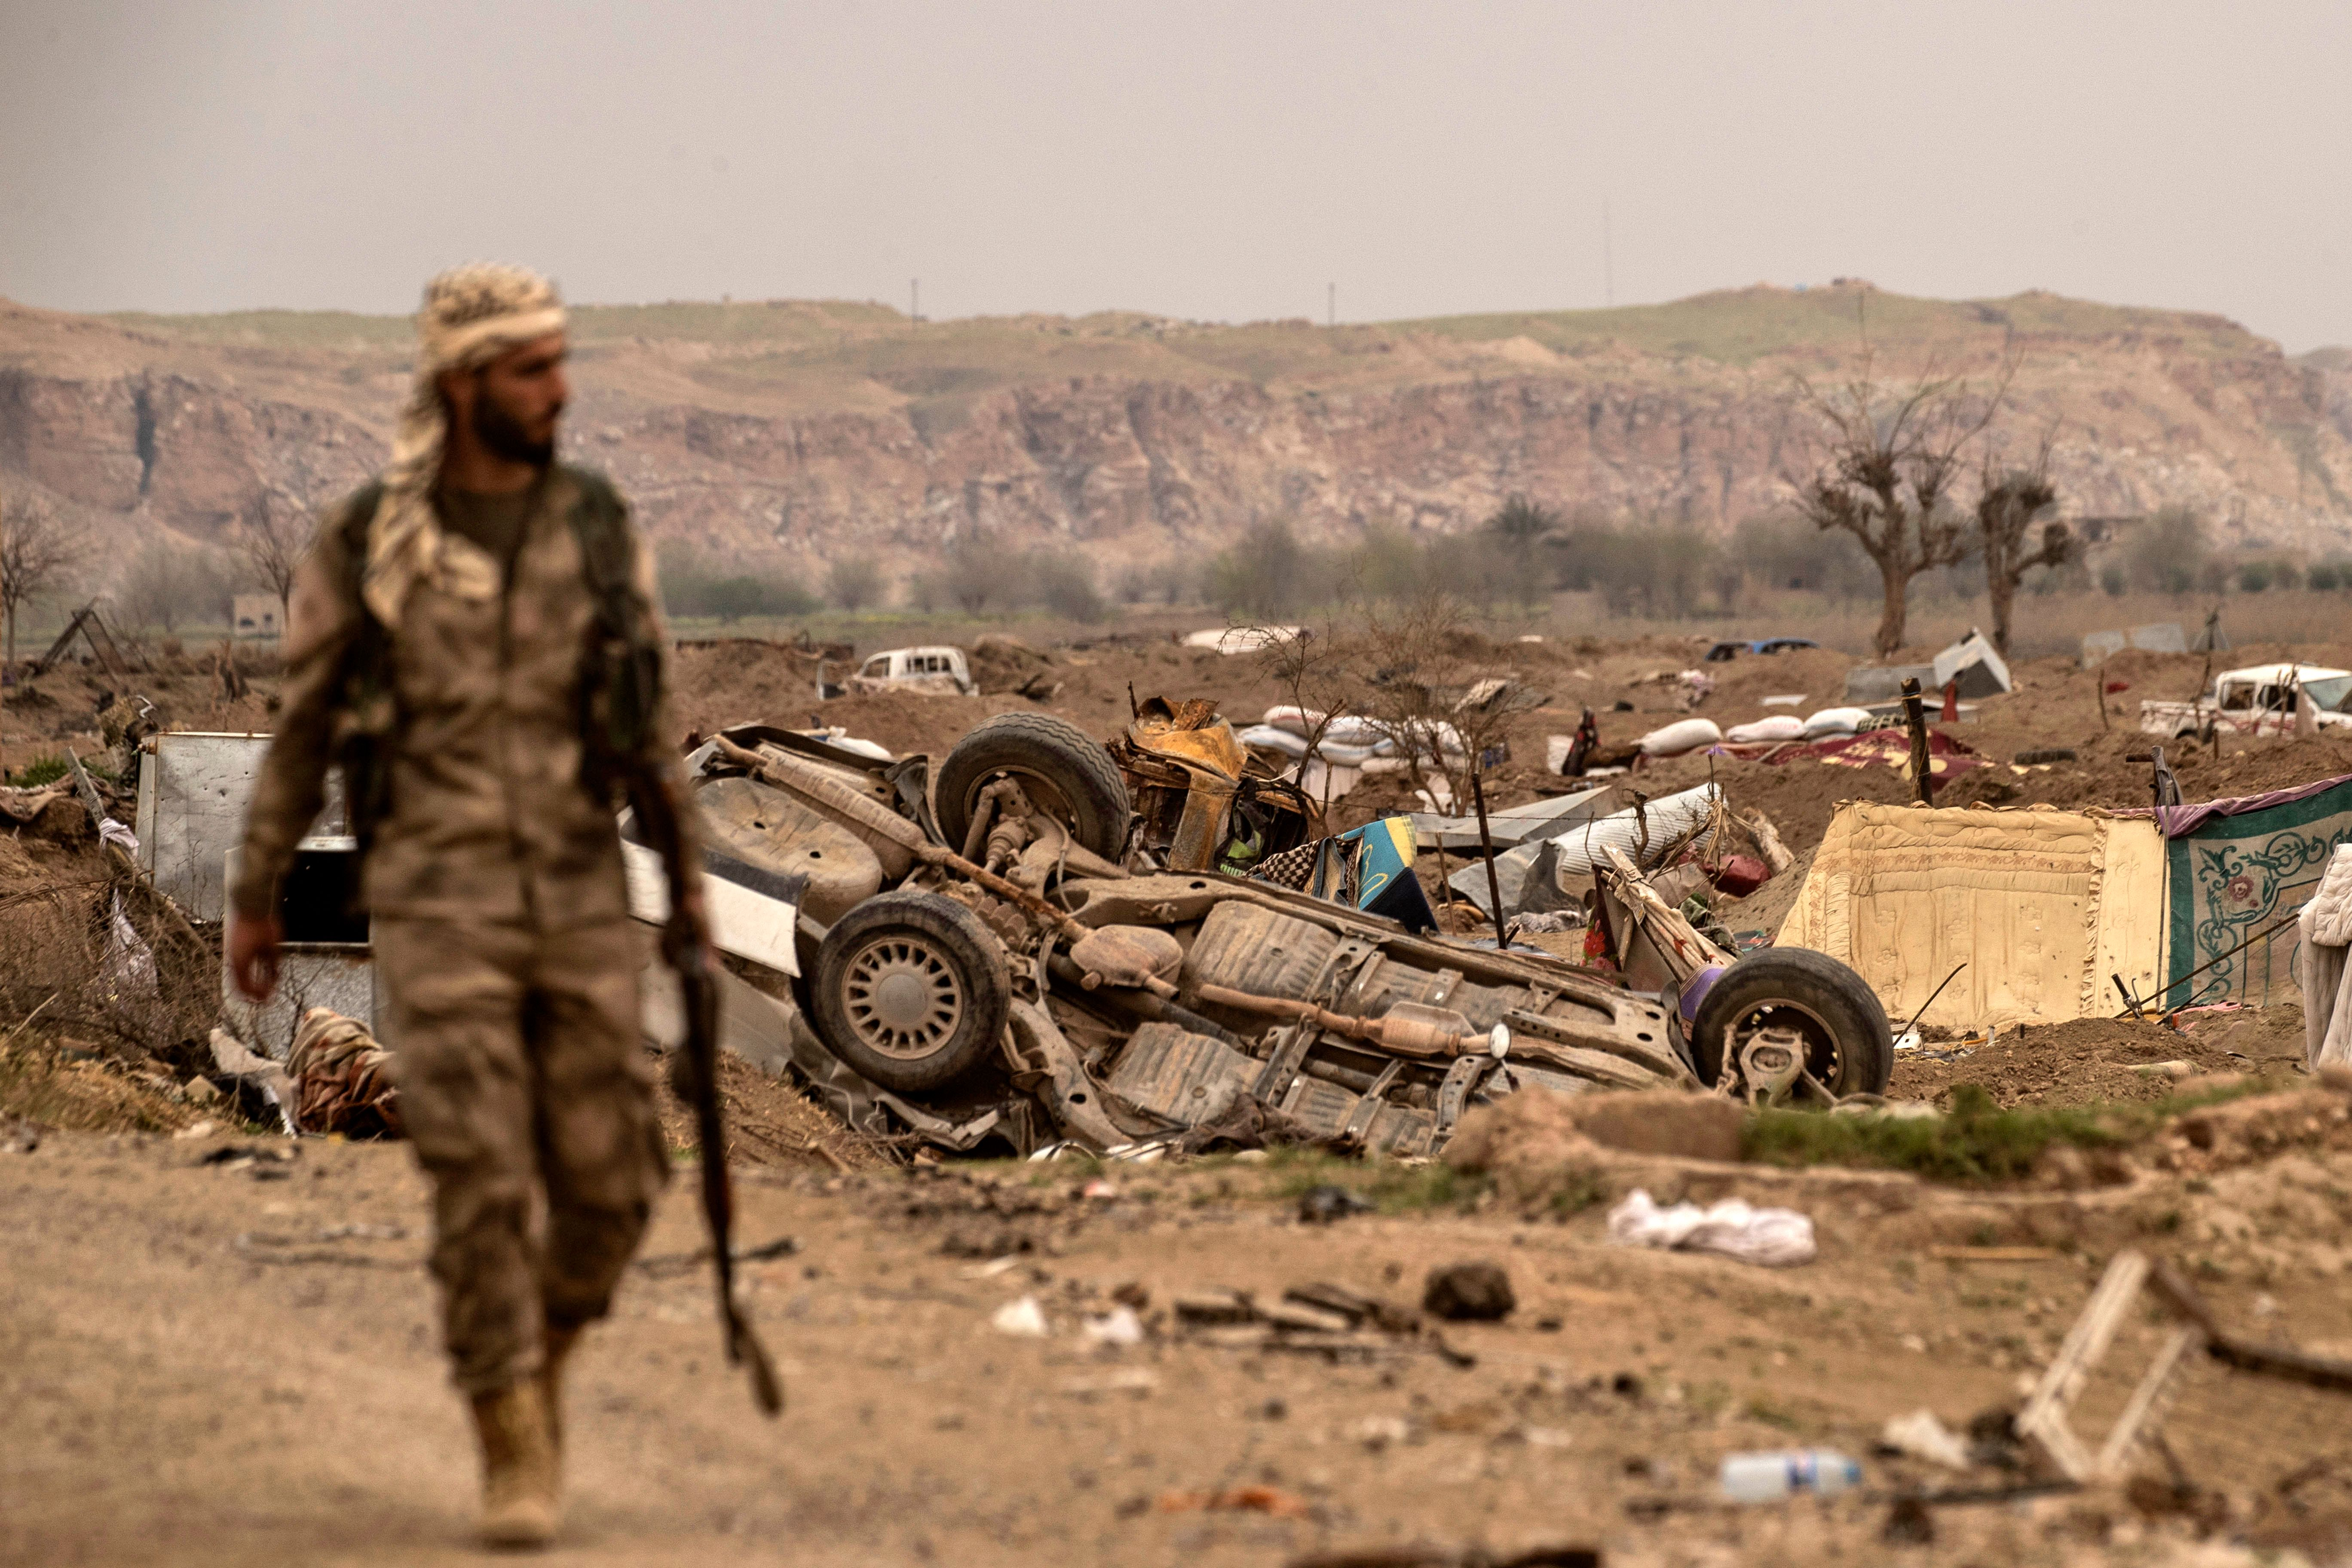 """A member of the SDF walks past damaged vehicles on the side of a road in the village of Baghouz in Syria's eastern Deir ez-Zor Province on March 24, 2019, a day after the ISIS """"caliphate"""" was declared defeated. Photo by DELIL SOULEIMAN/AFP via Getty Images."""